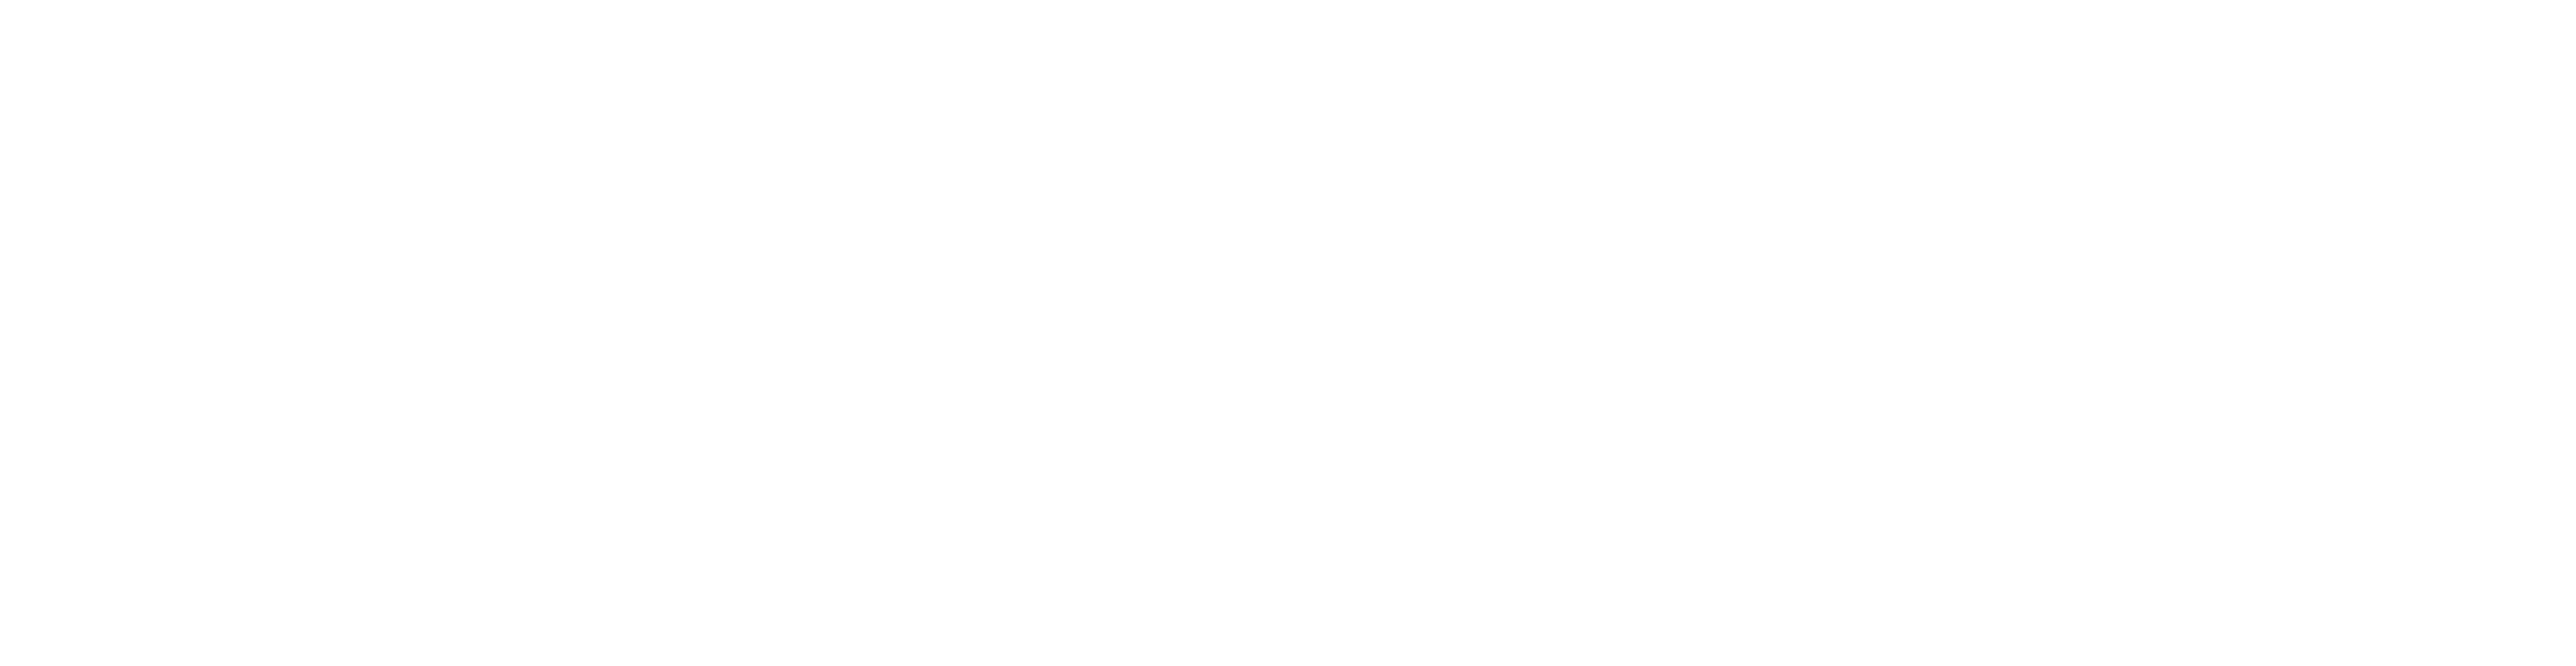 Escape the Loop